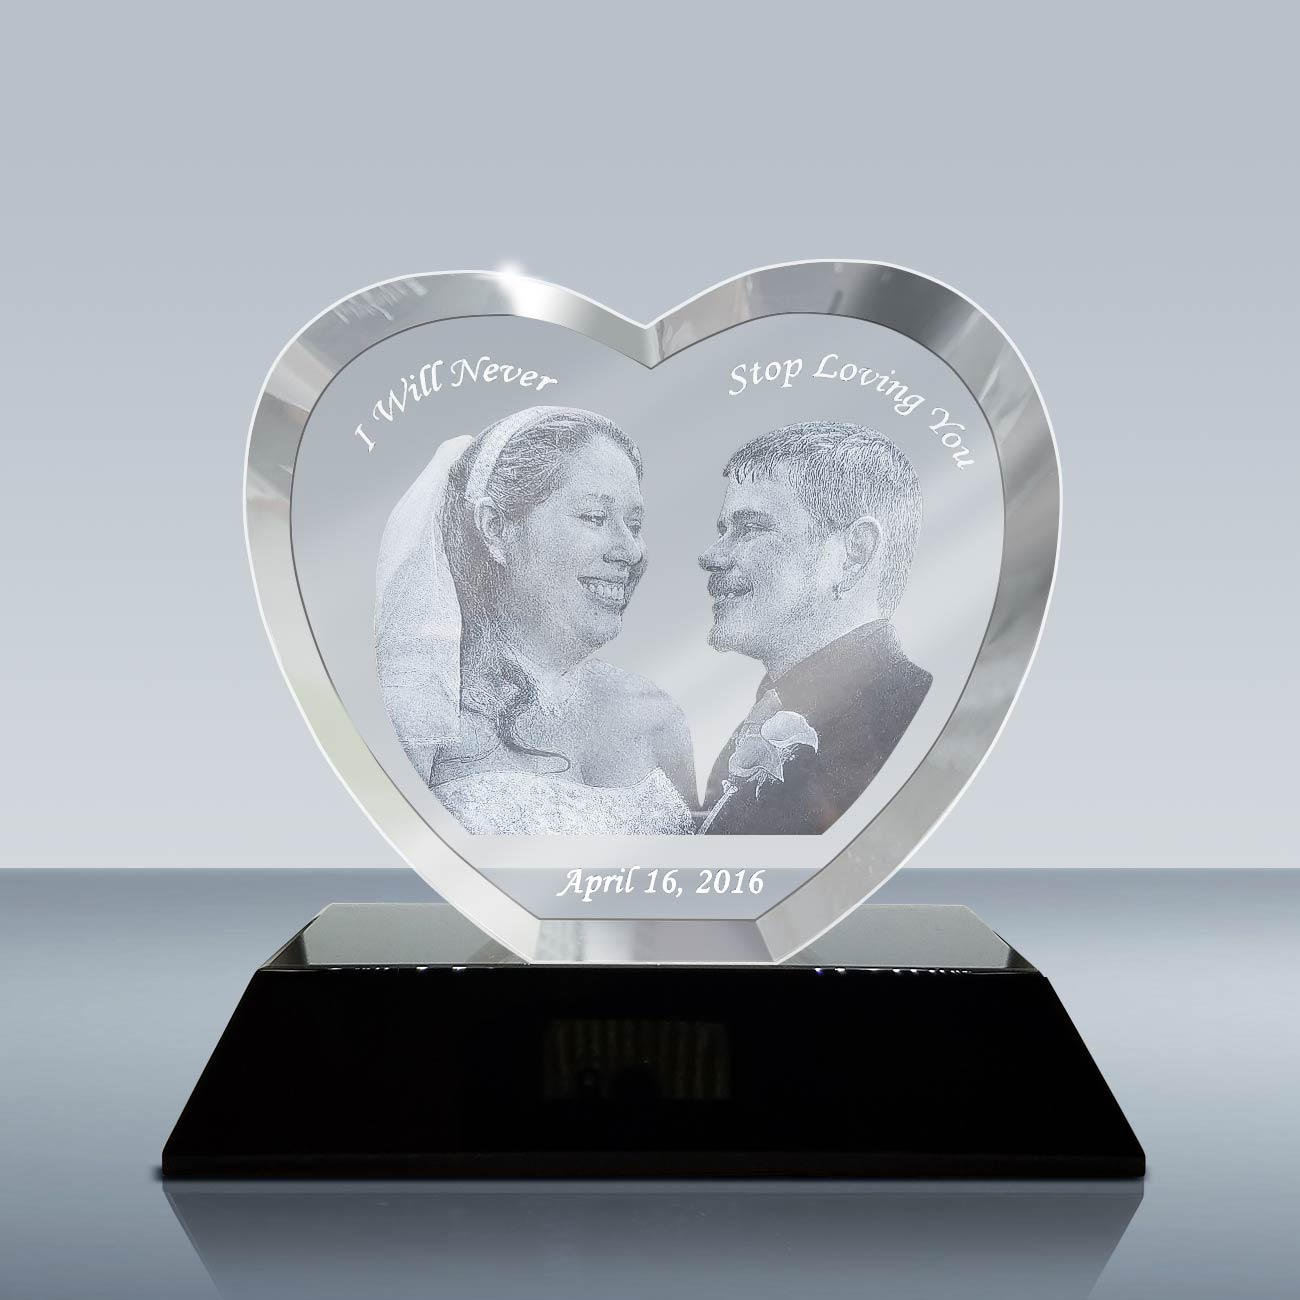 Goodcount 3D Crystal Etching Gift & Award